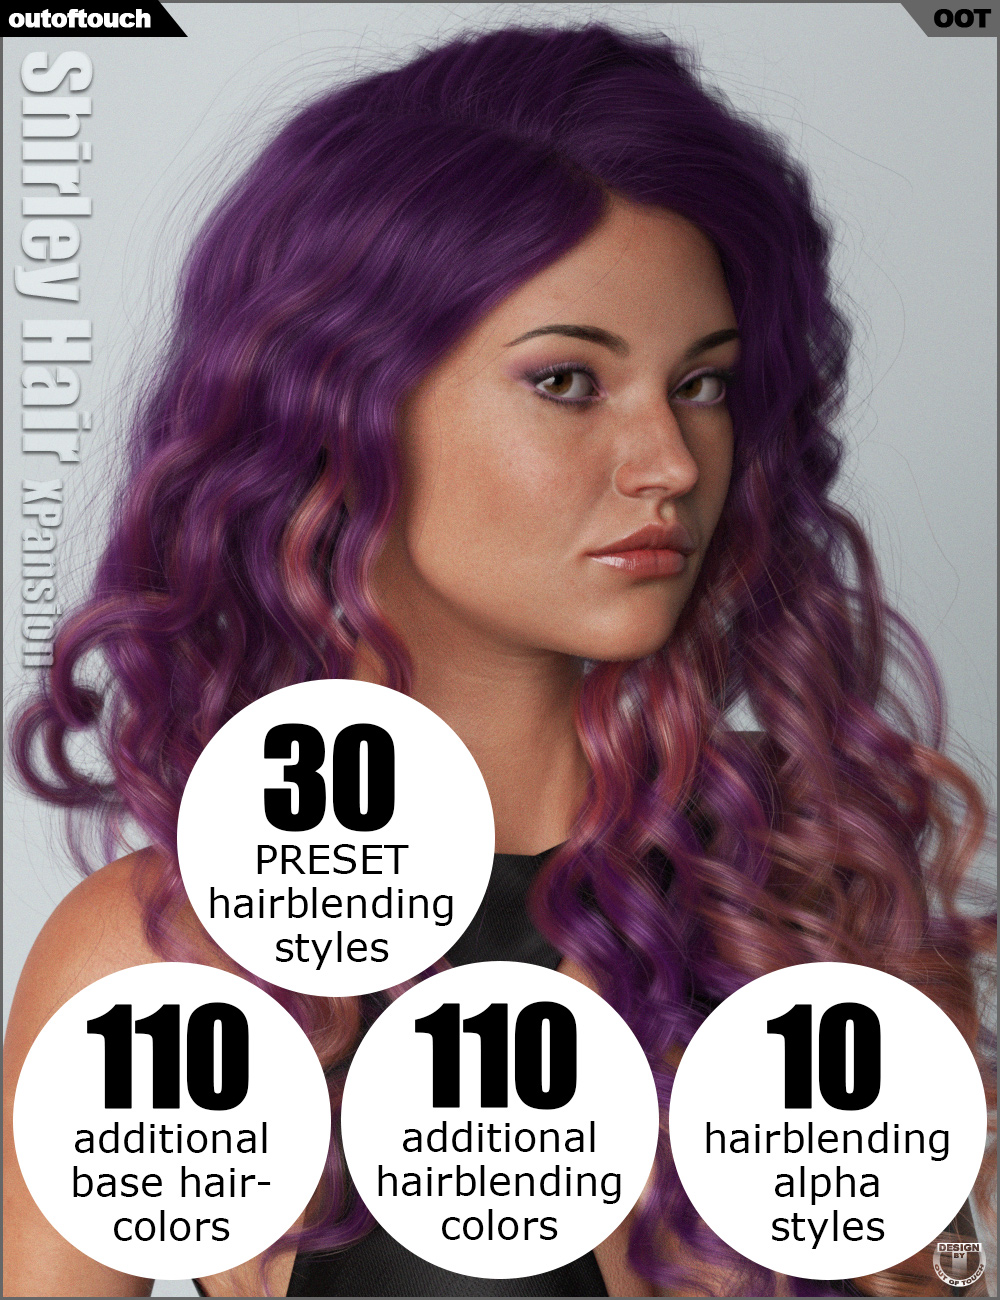 OOT Hairblending 2.0 Texture XPansion for Shirley Hair by: outoftouch, 3D Models by Daz 3D